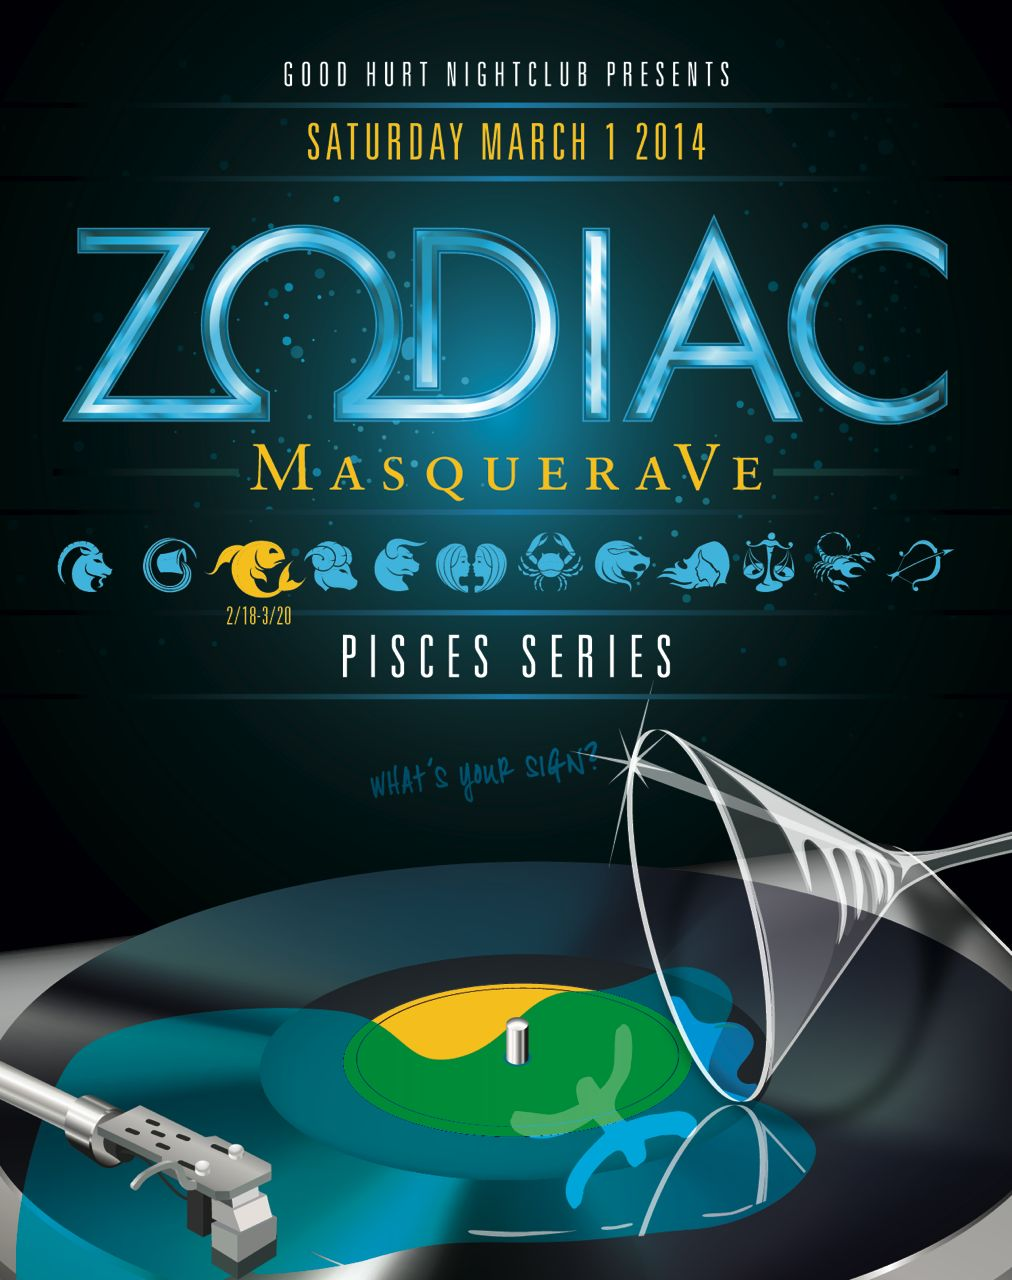 Buy Tickets to Zodiac MasqueraVe PISCES in West LA